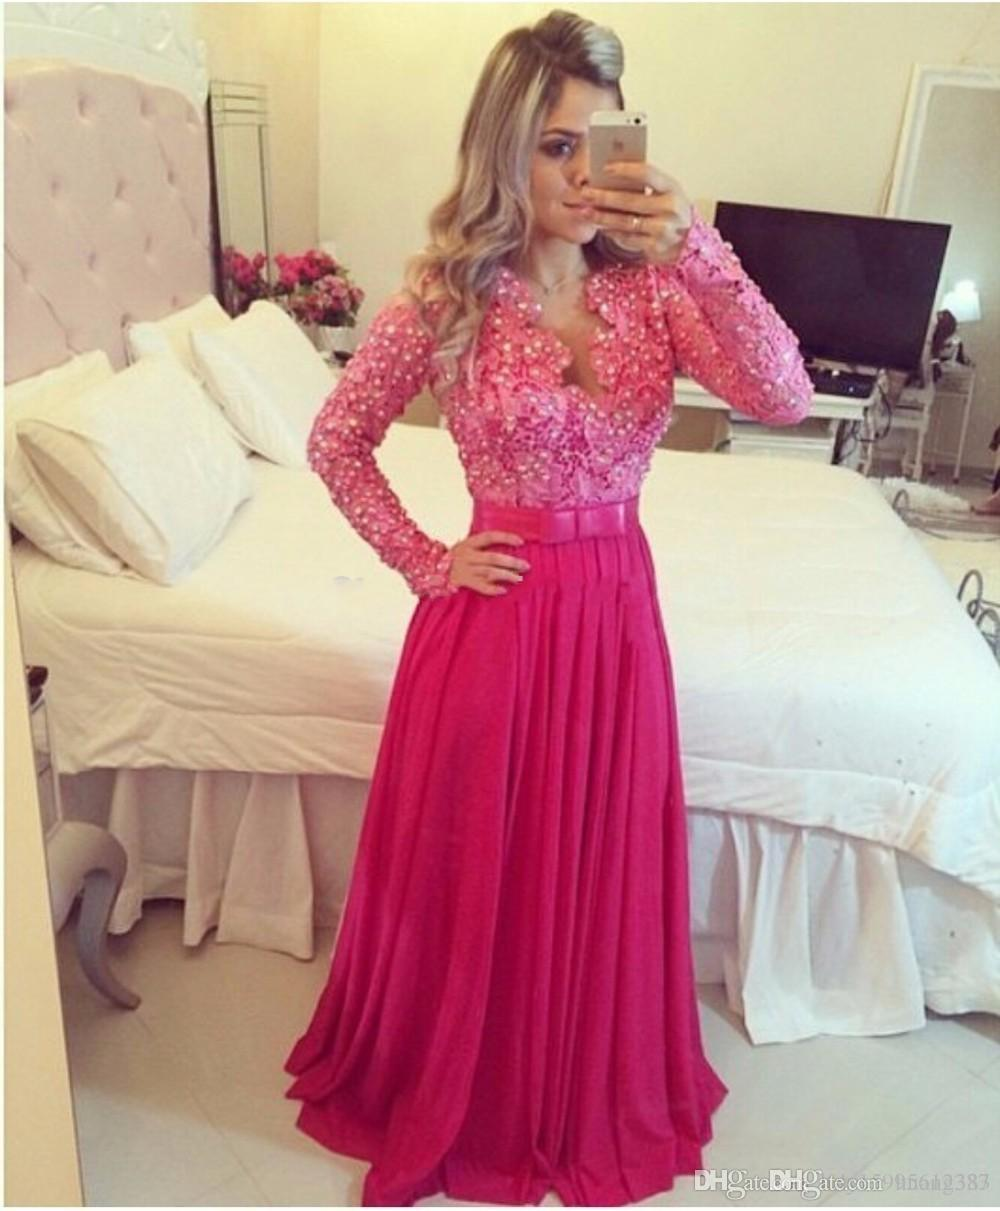 2019 New Long Sleeve Prom Dresses with V-neck Luxury Handmade Pearl A-line Bow Knot Chiffon Plum Pink Prom Gowns Evening Dress150